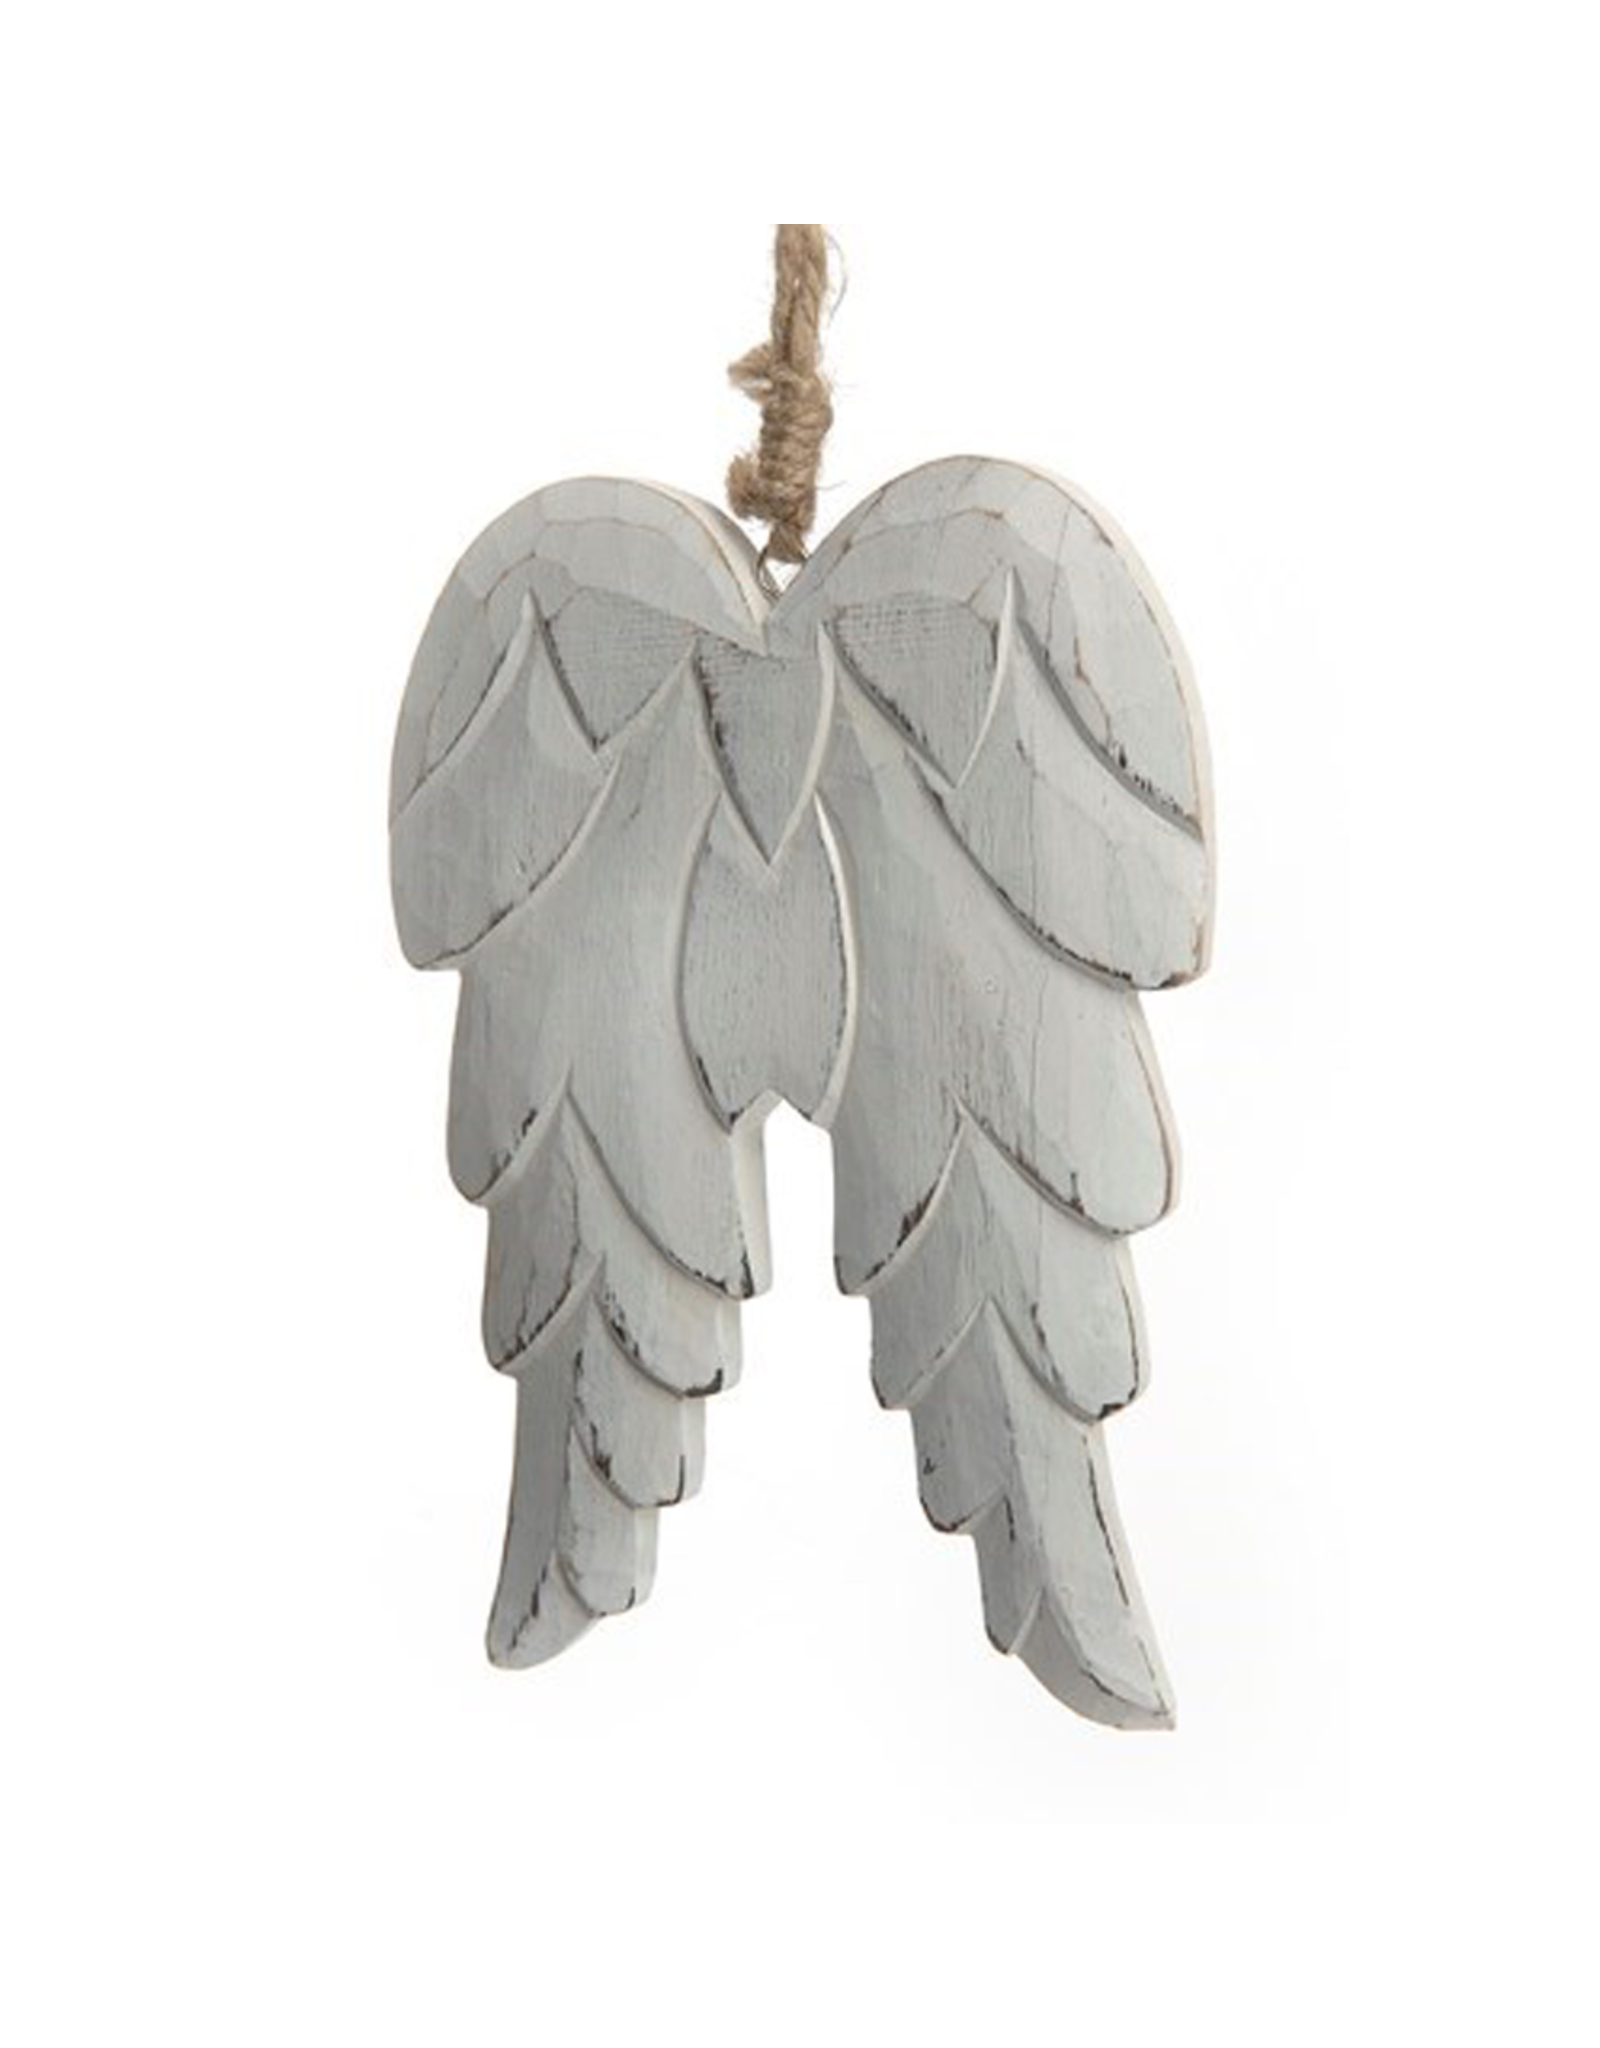 Carved Wood Angel Wings Ornament